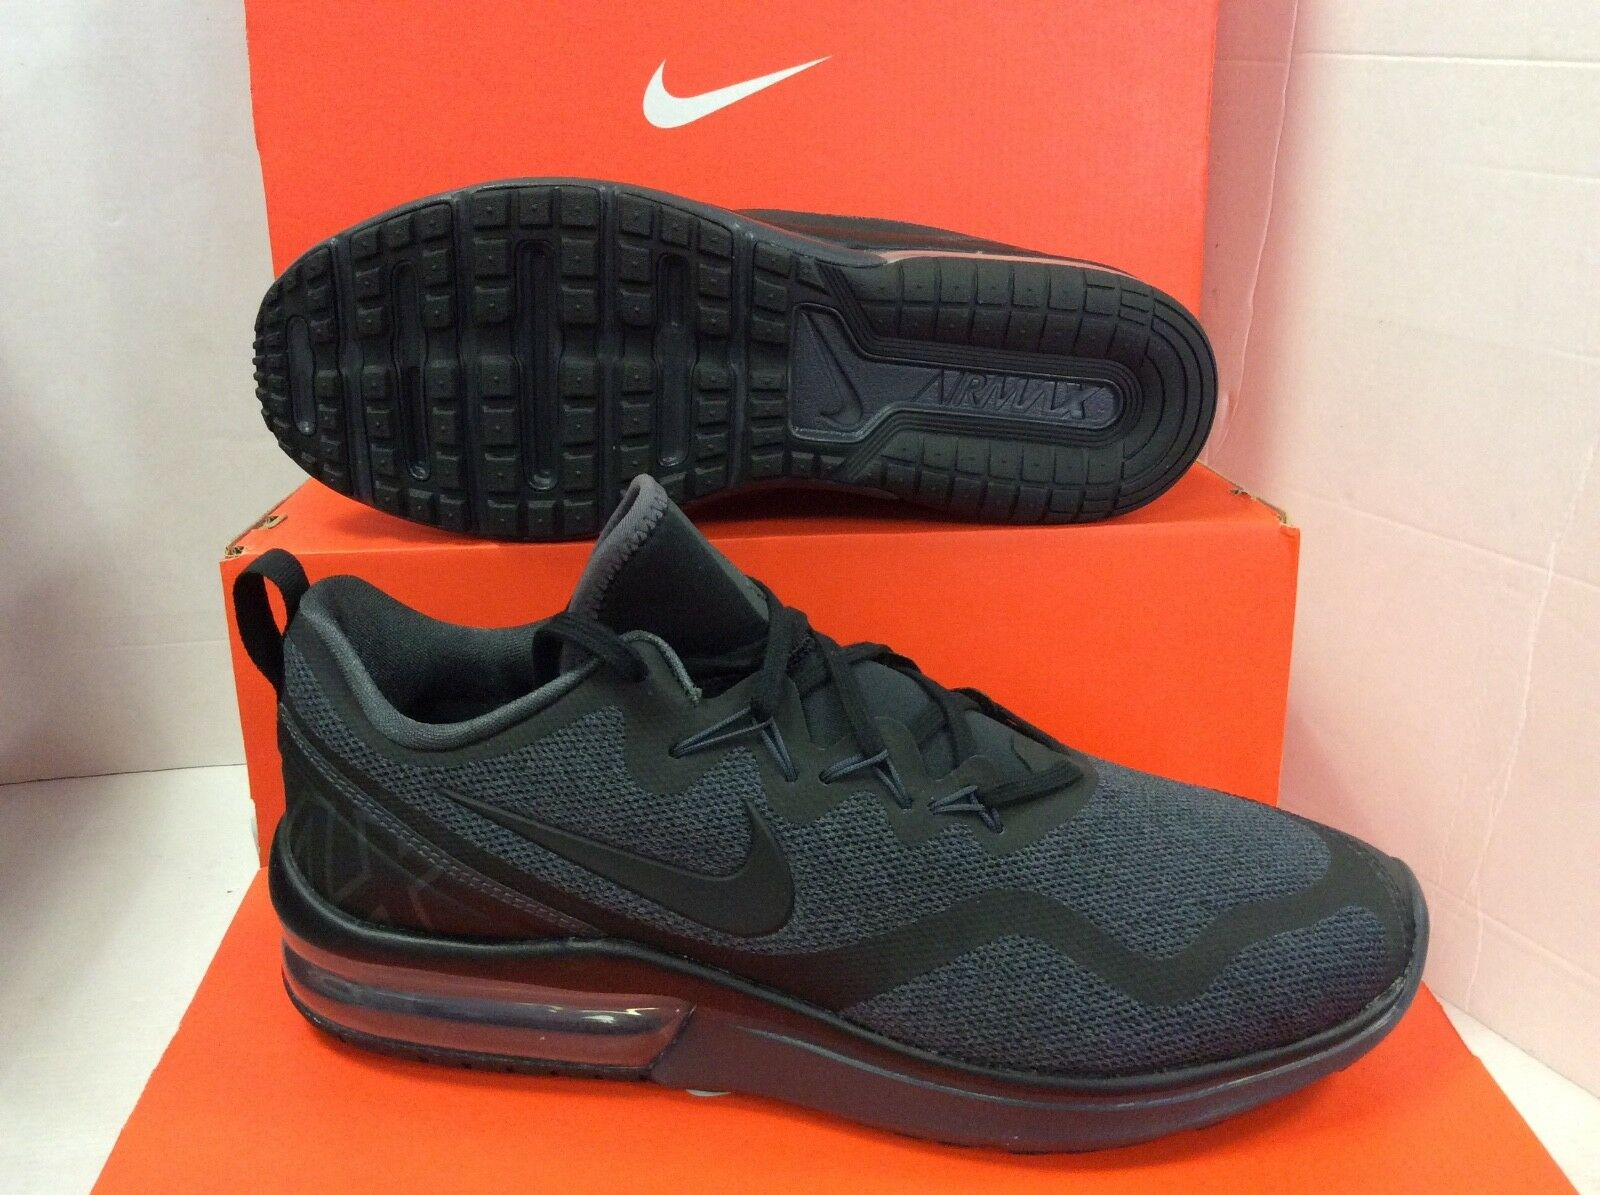 Nike Air Max Fury Men's Trainers, Size